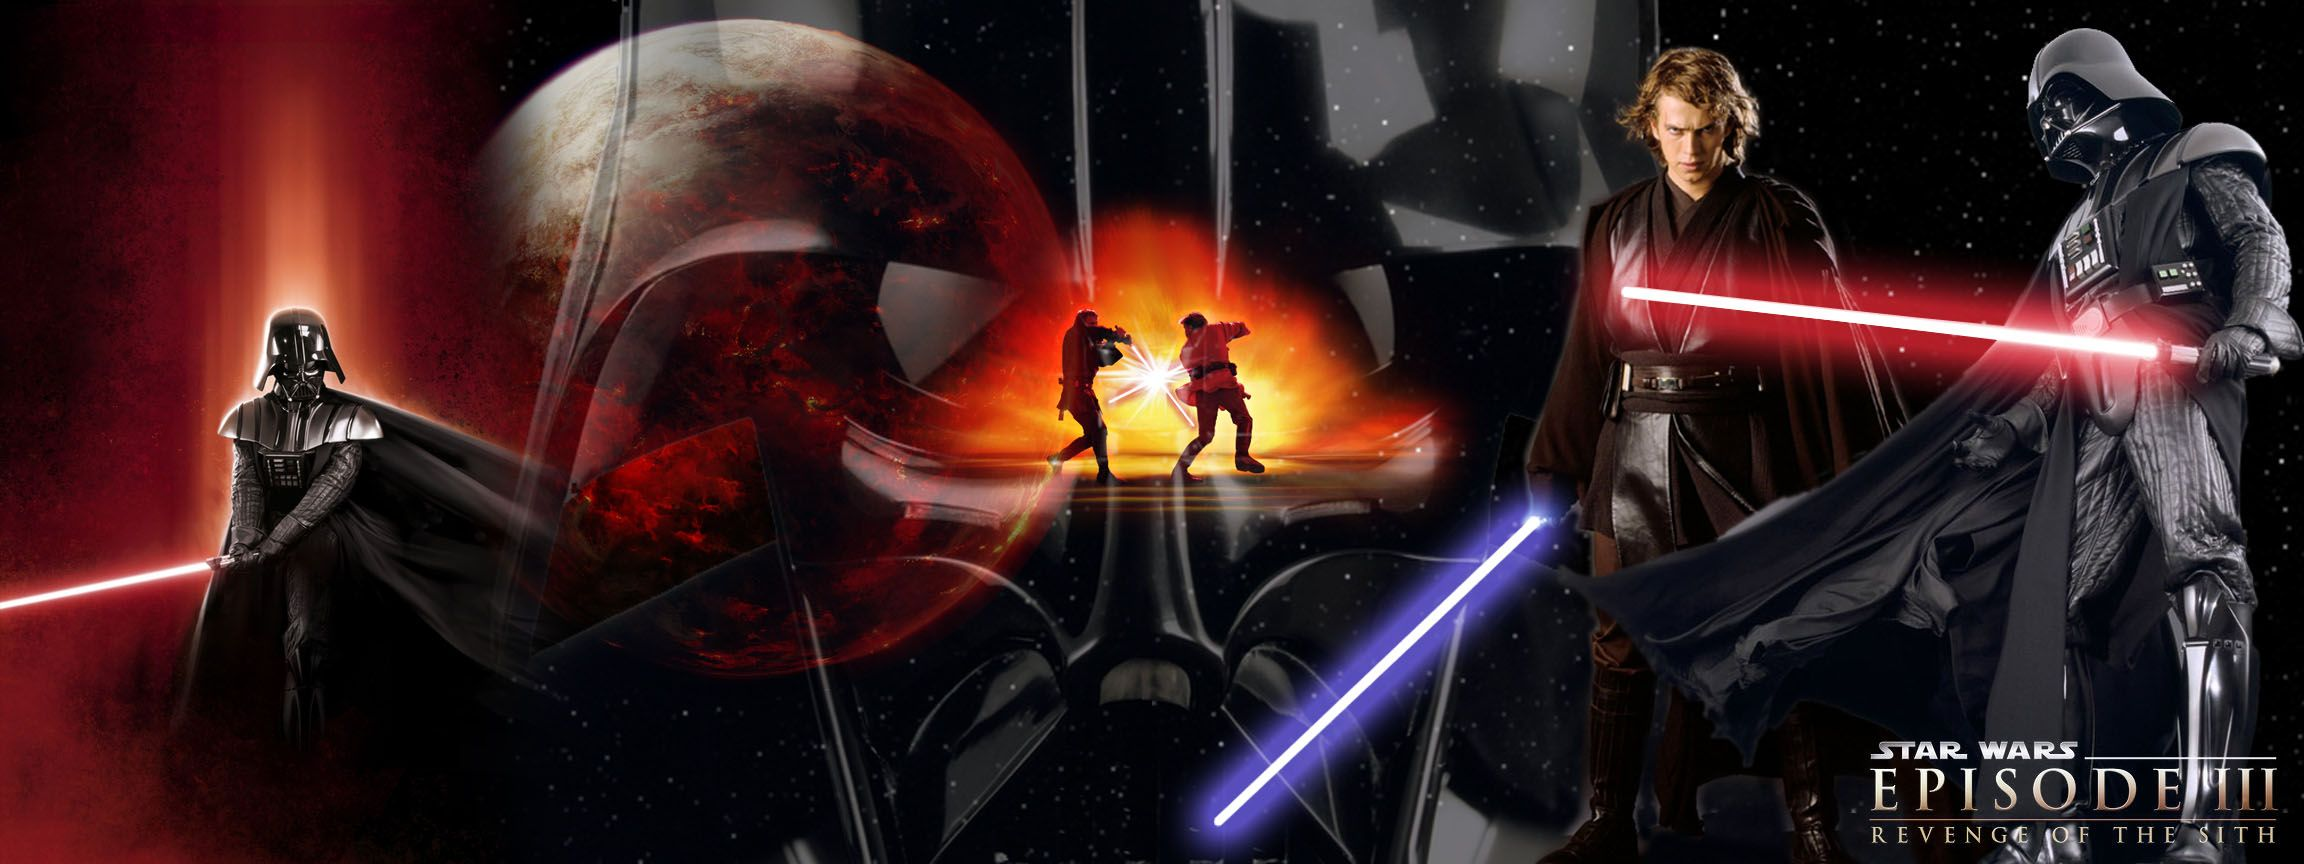 Red Star Wars Dual Screen Wallpapers Top Free Red Star Wars Dual Screen Backgrounds Wallpaperaccess